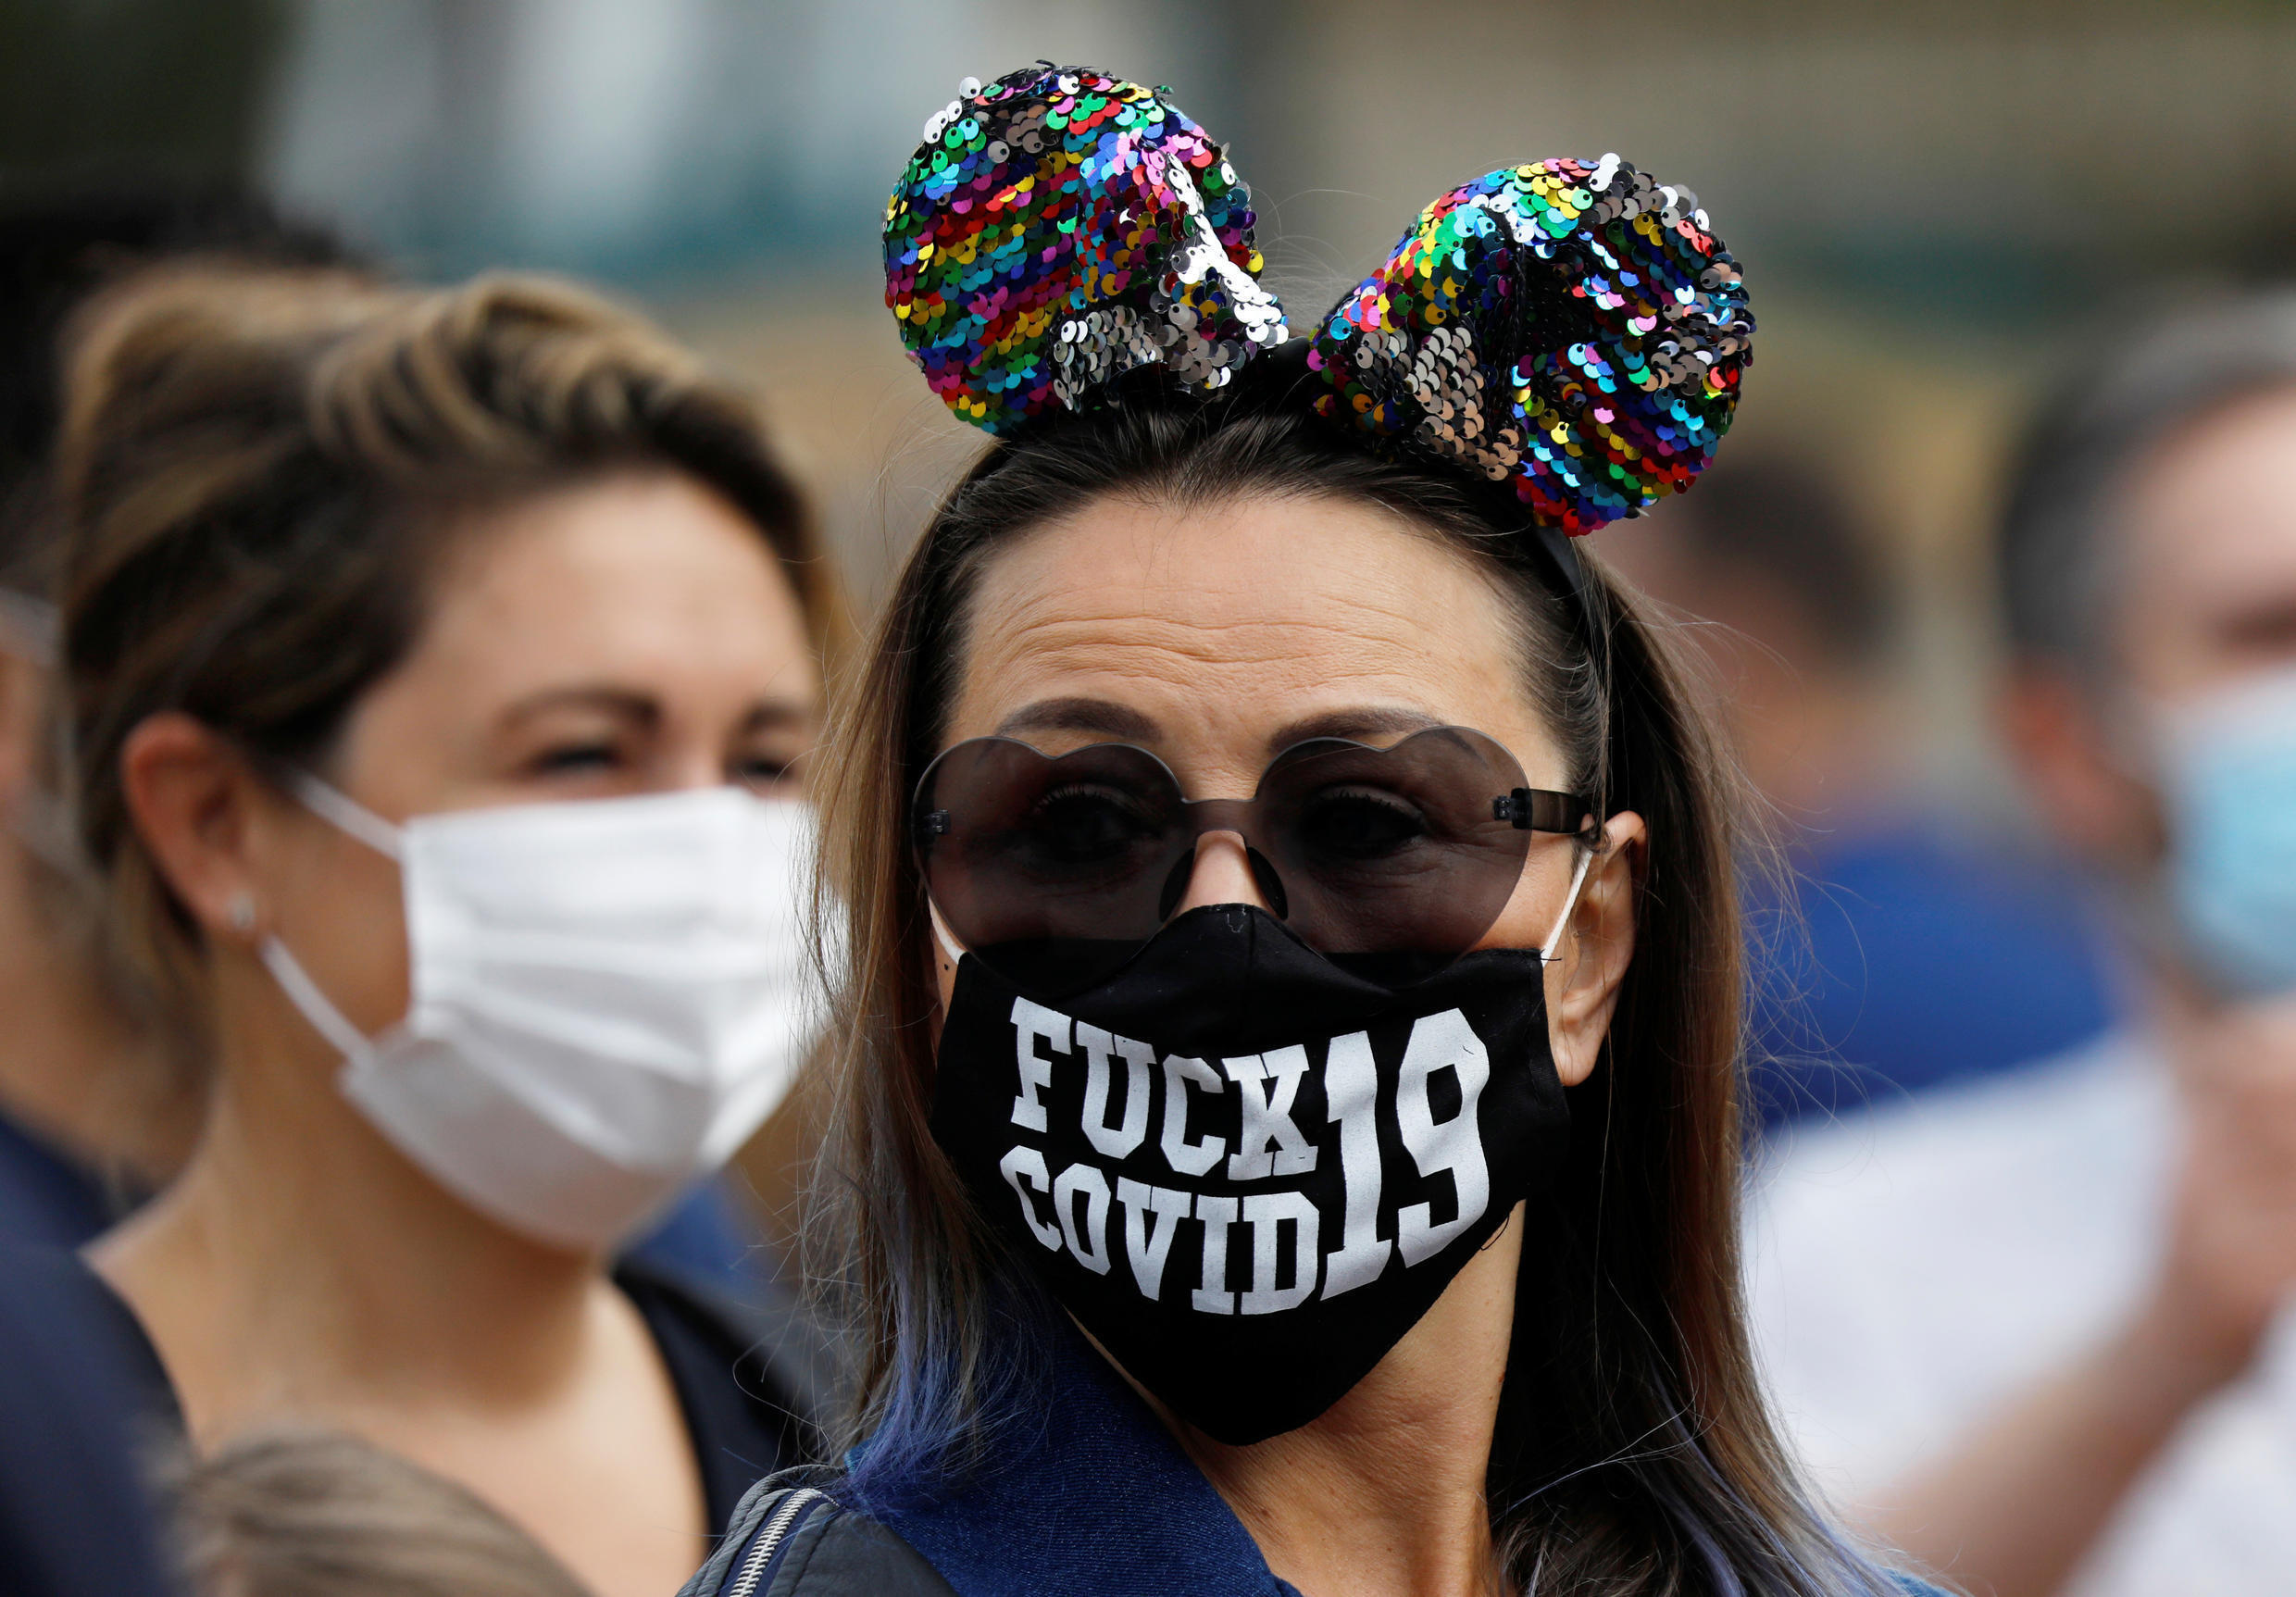 Visitors wear protective face masks at Disneyland Paris as the theme park reopens its doors to the public in Marne-la-Vallee, near Paris, following the coronavirus disease (COVID-19) outbreak in France, July 15, 2020.